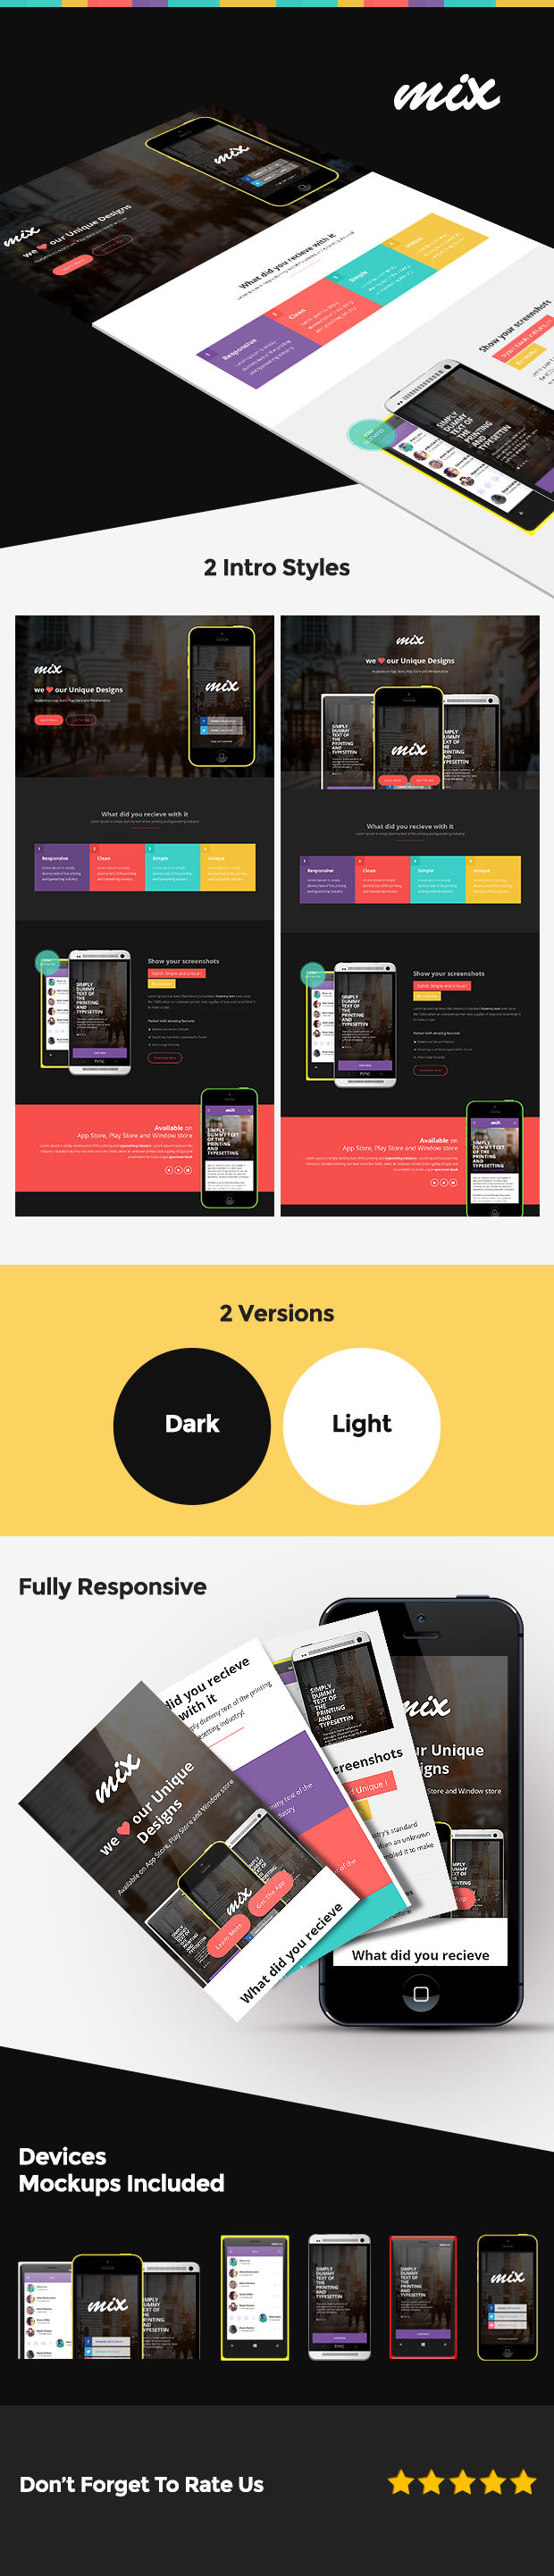 Responsive Bootstrap App Landing Page - 2